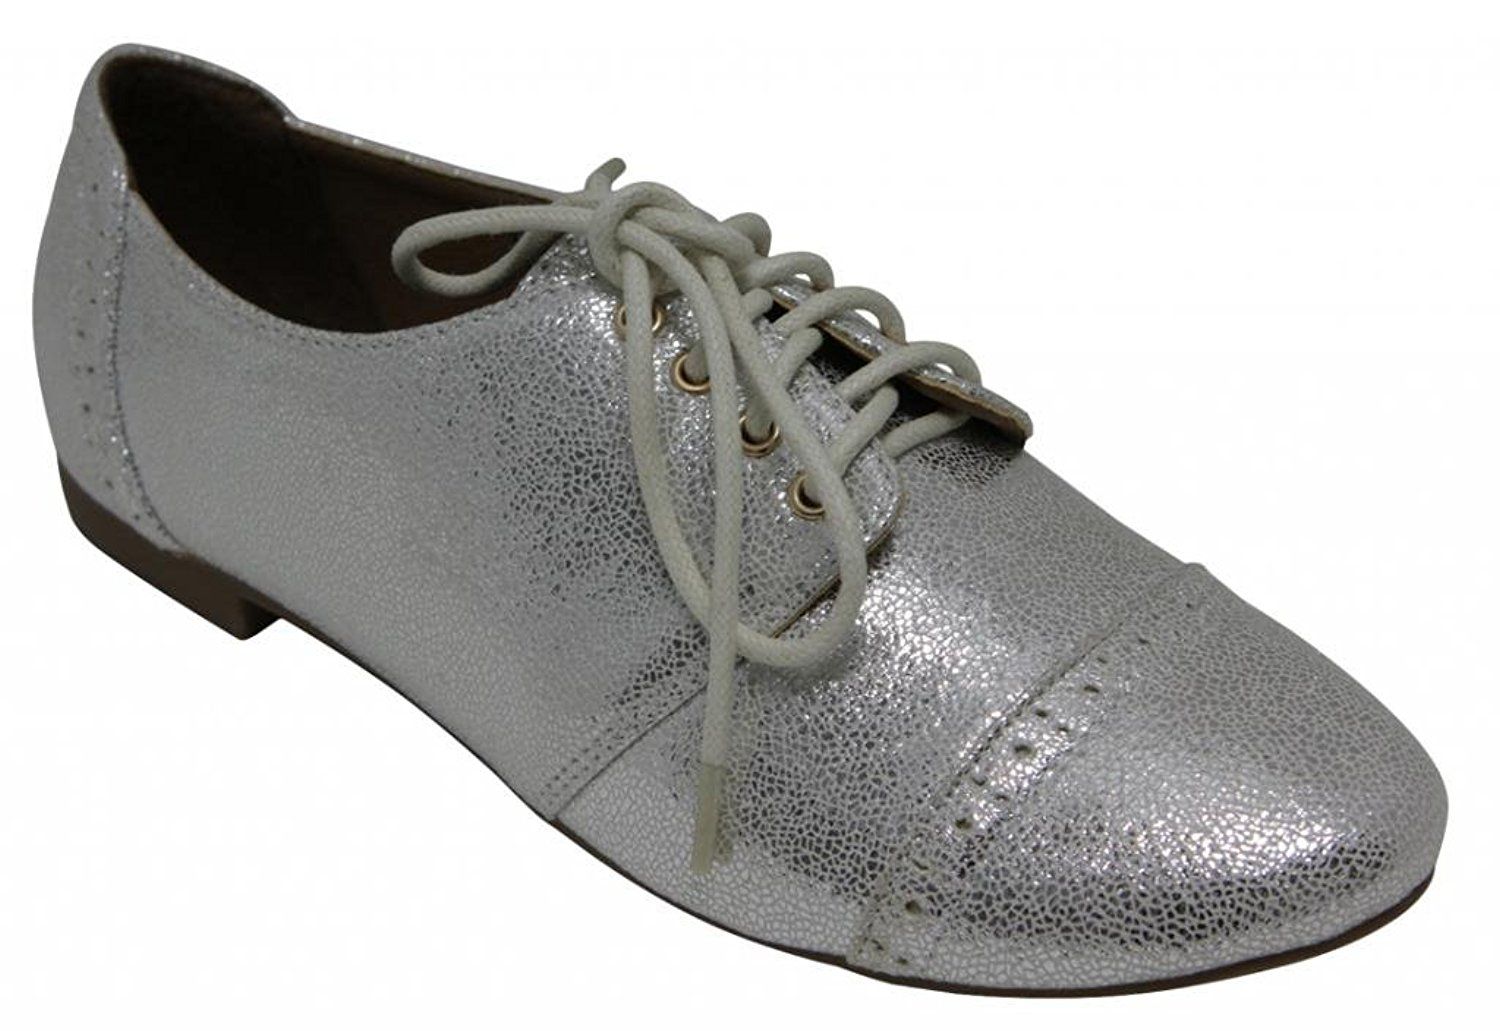 Anna Mandy-3 Women's dress Flat lace up metallic patent leather Pu loafers Oxfords shoes